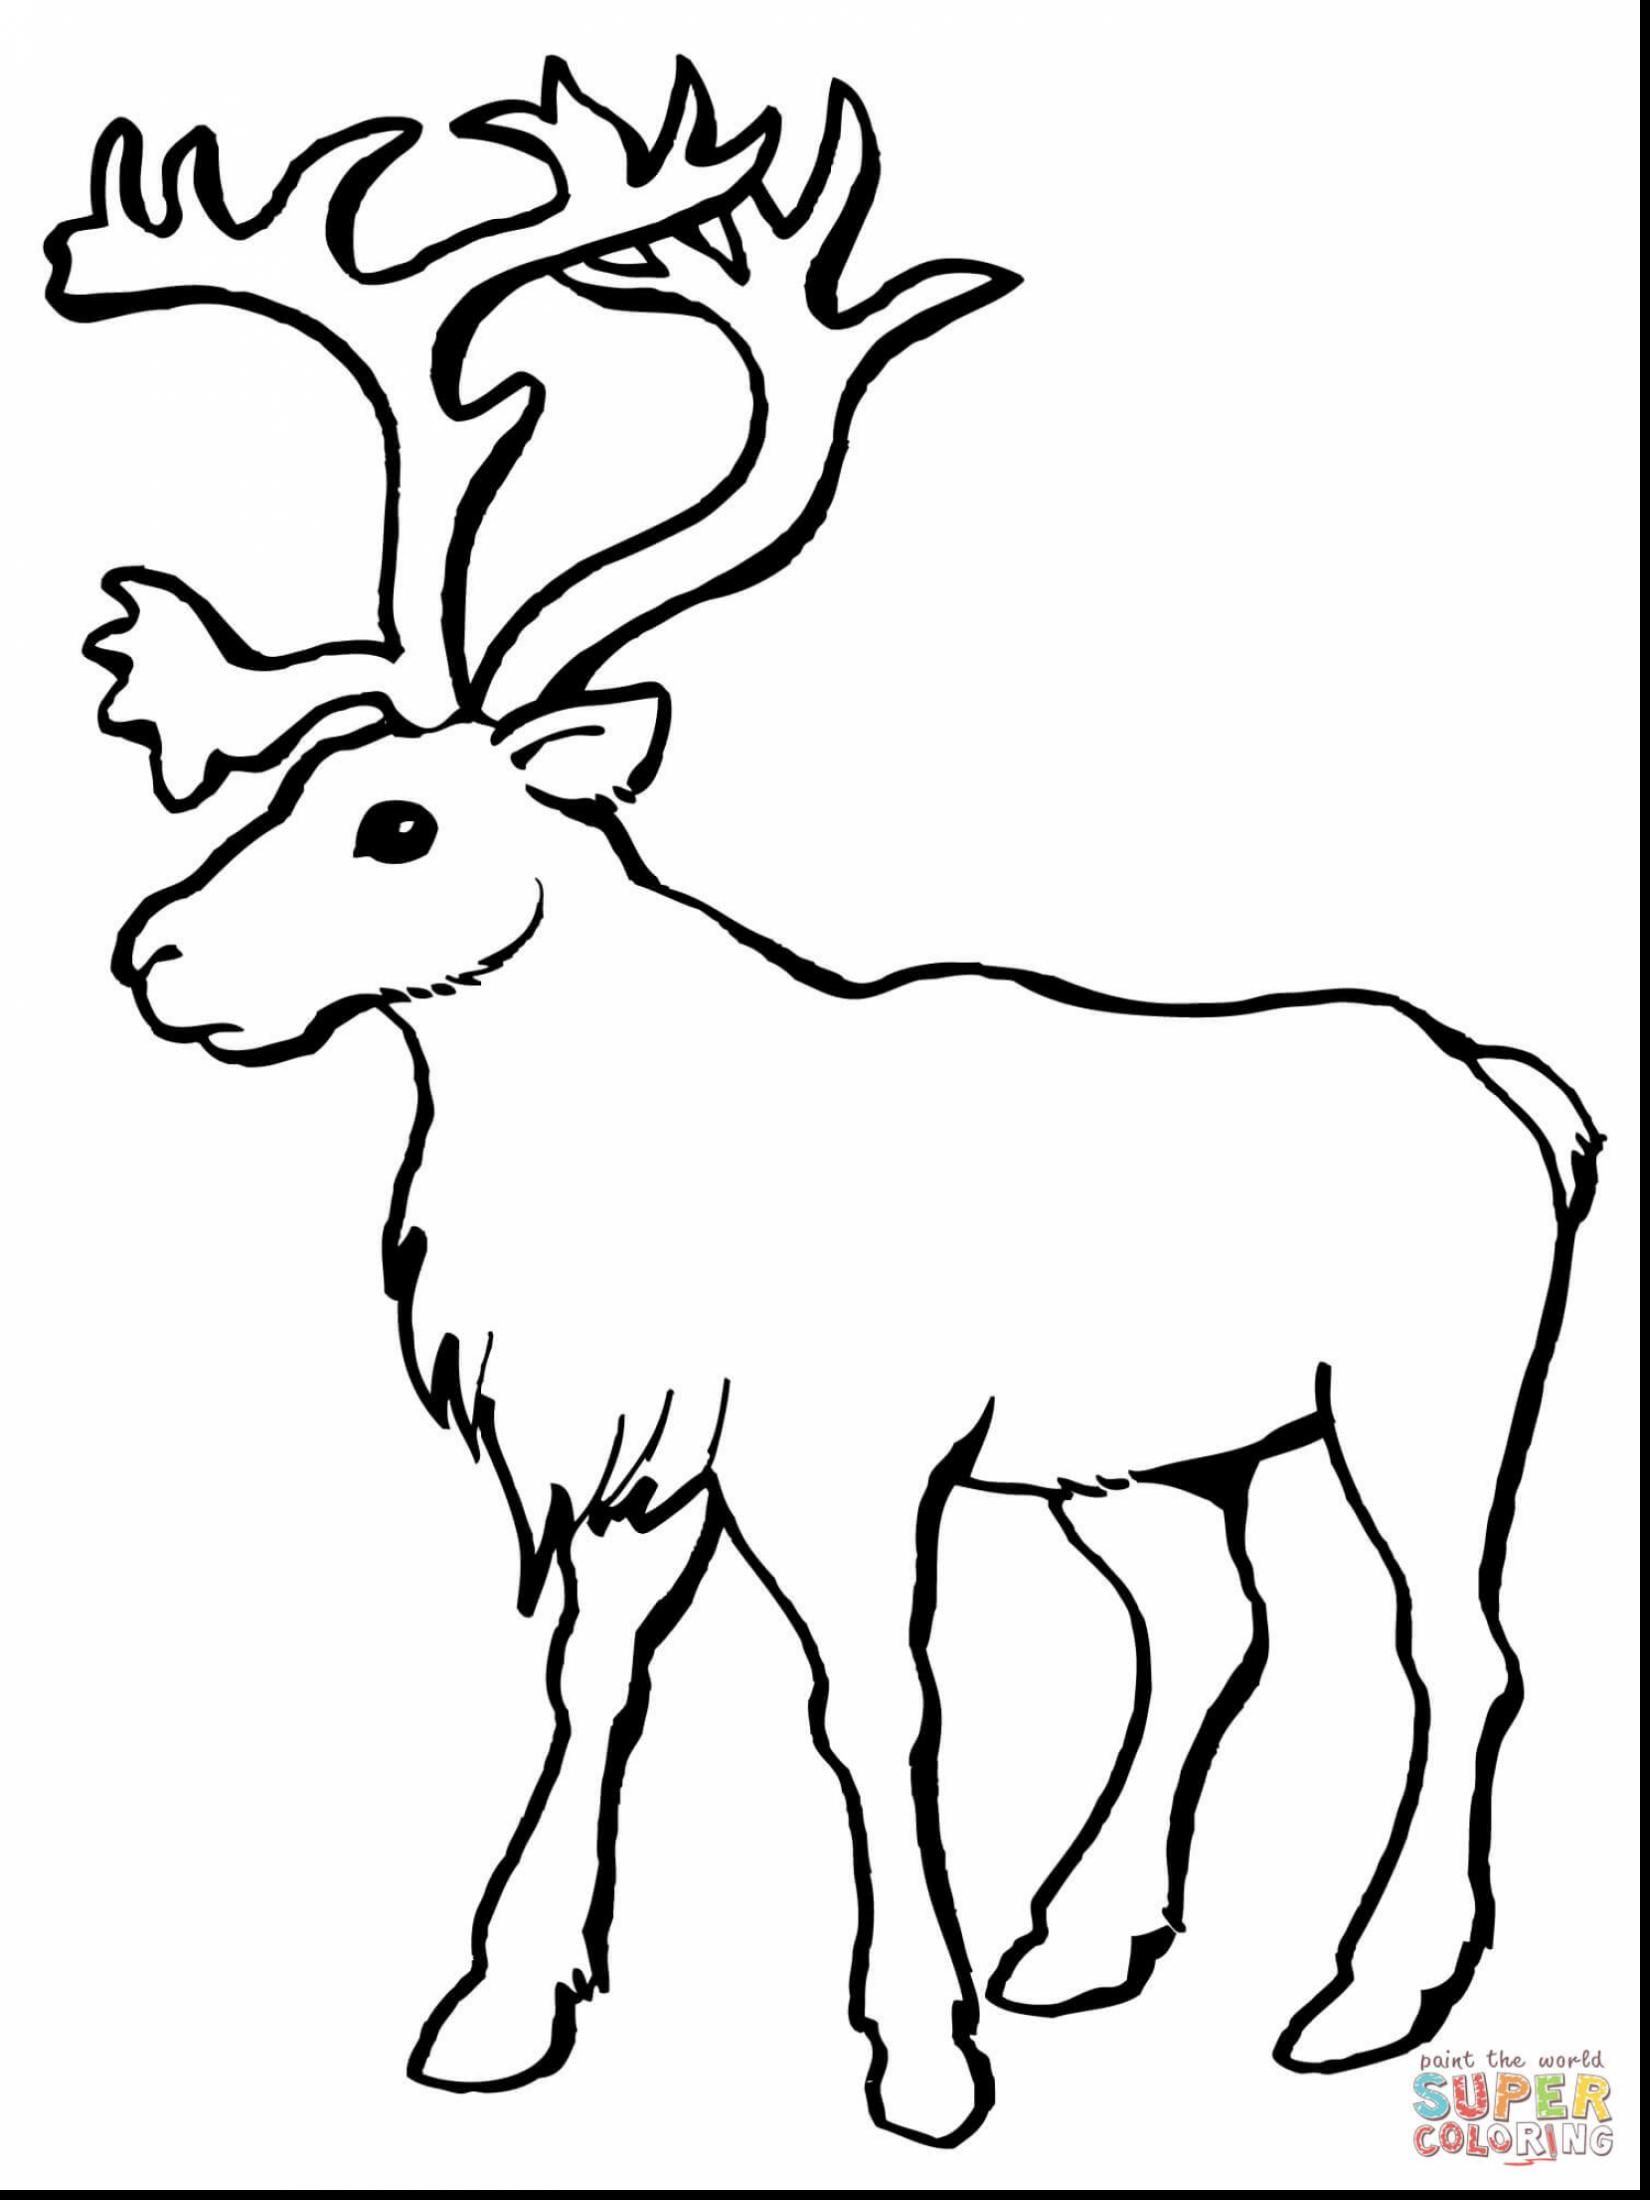 Impressive Reindeer Head Santa And Sleigh With Reindeer Coloring Page And Reindeer Face Coloring Pag Deer Coloring Pages Animal Coloring Pages Reindeer Drawing